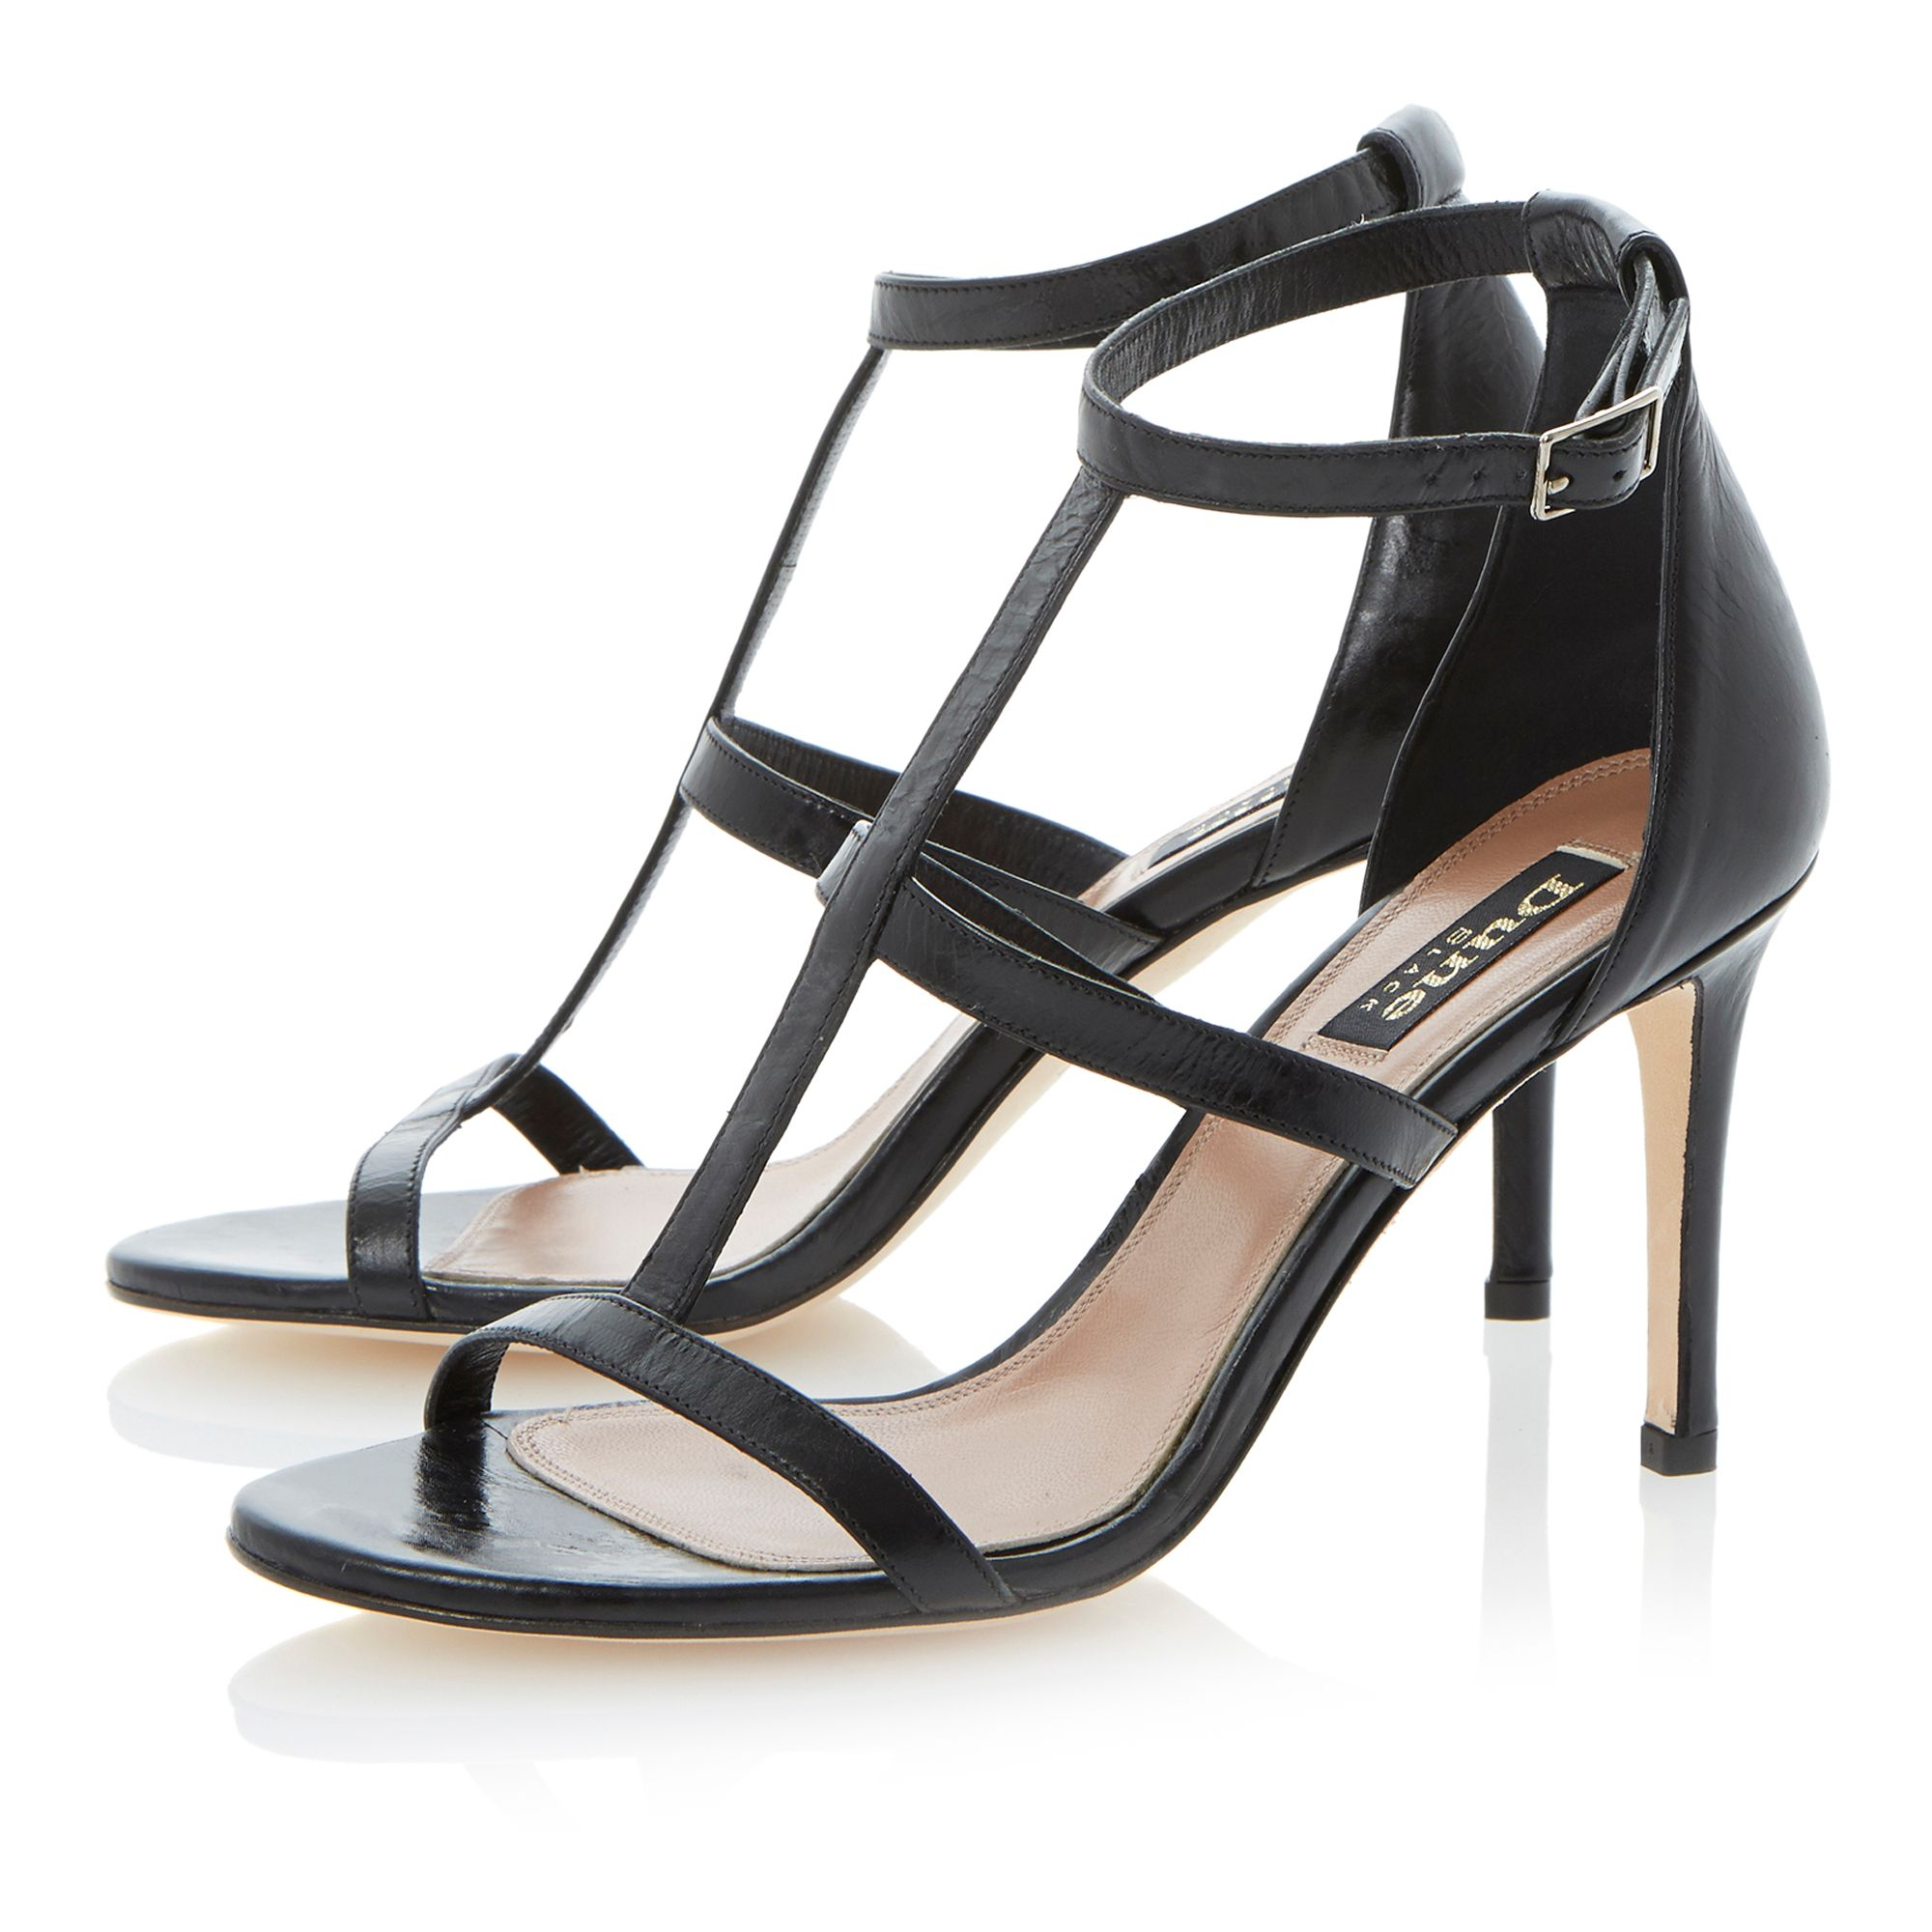 Hattie leather stiletto buckle sandals